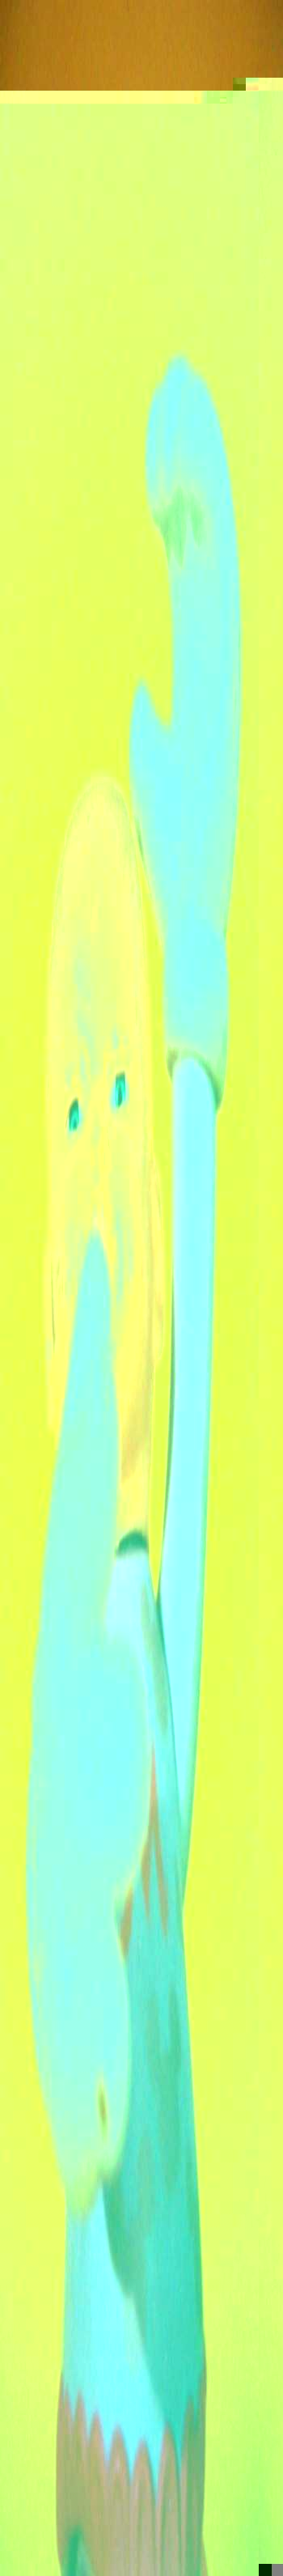 art-collector 2008- Kunstauktion 2008